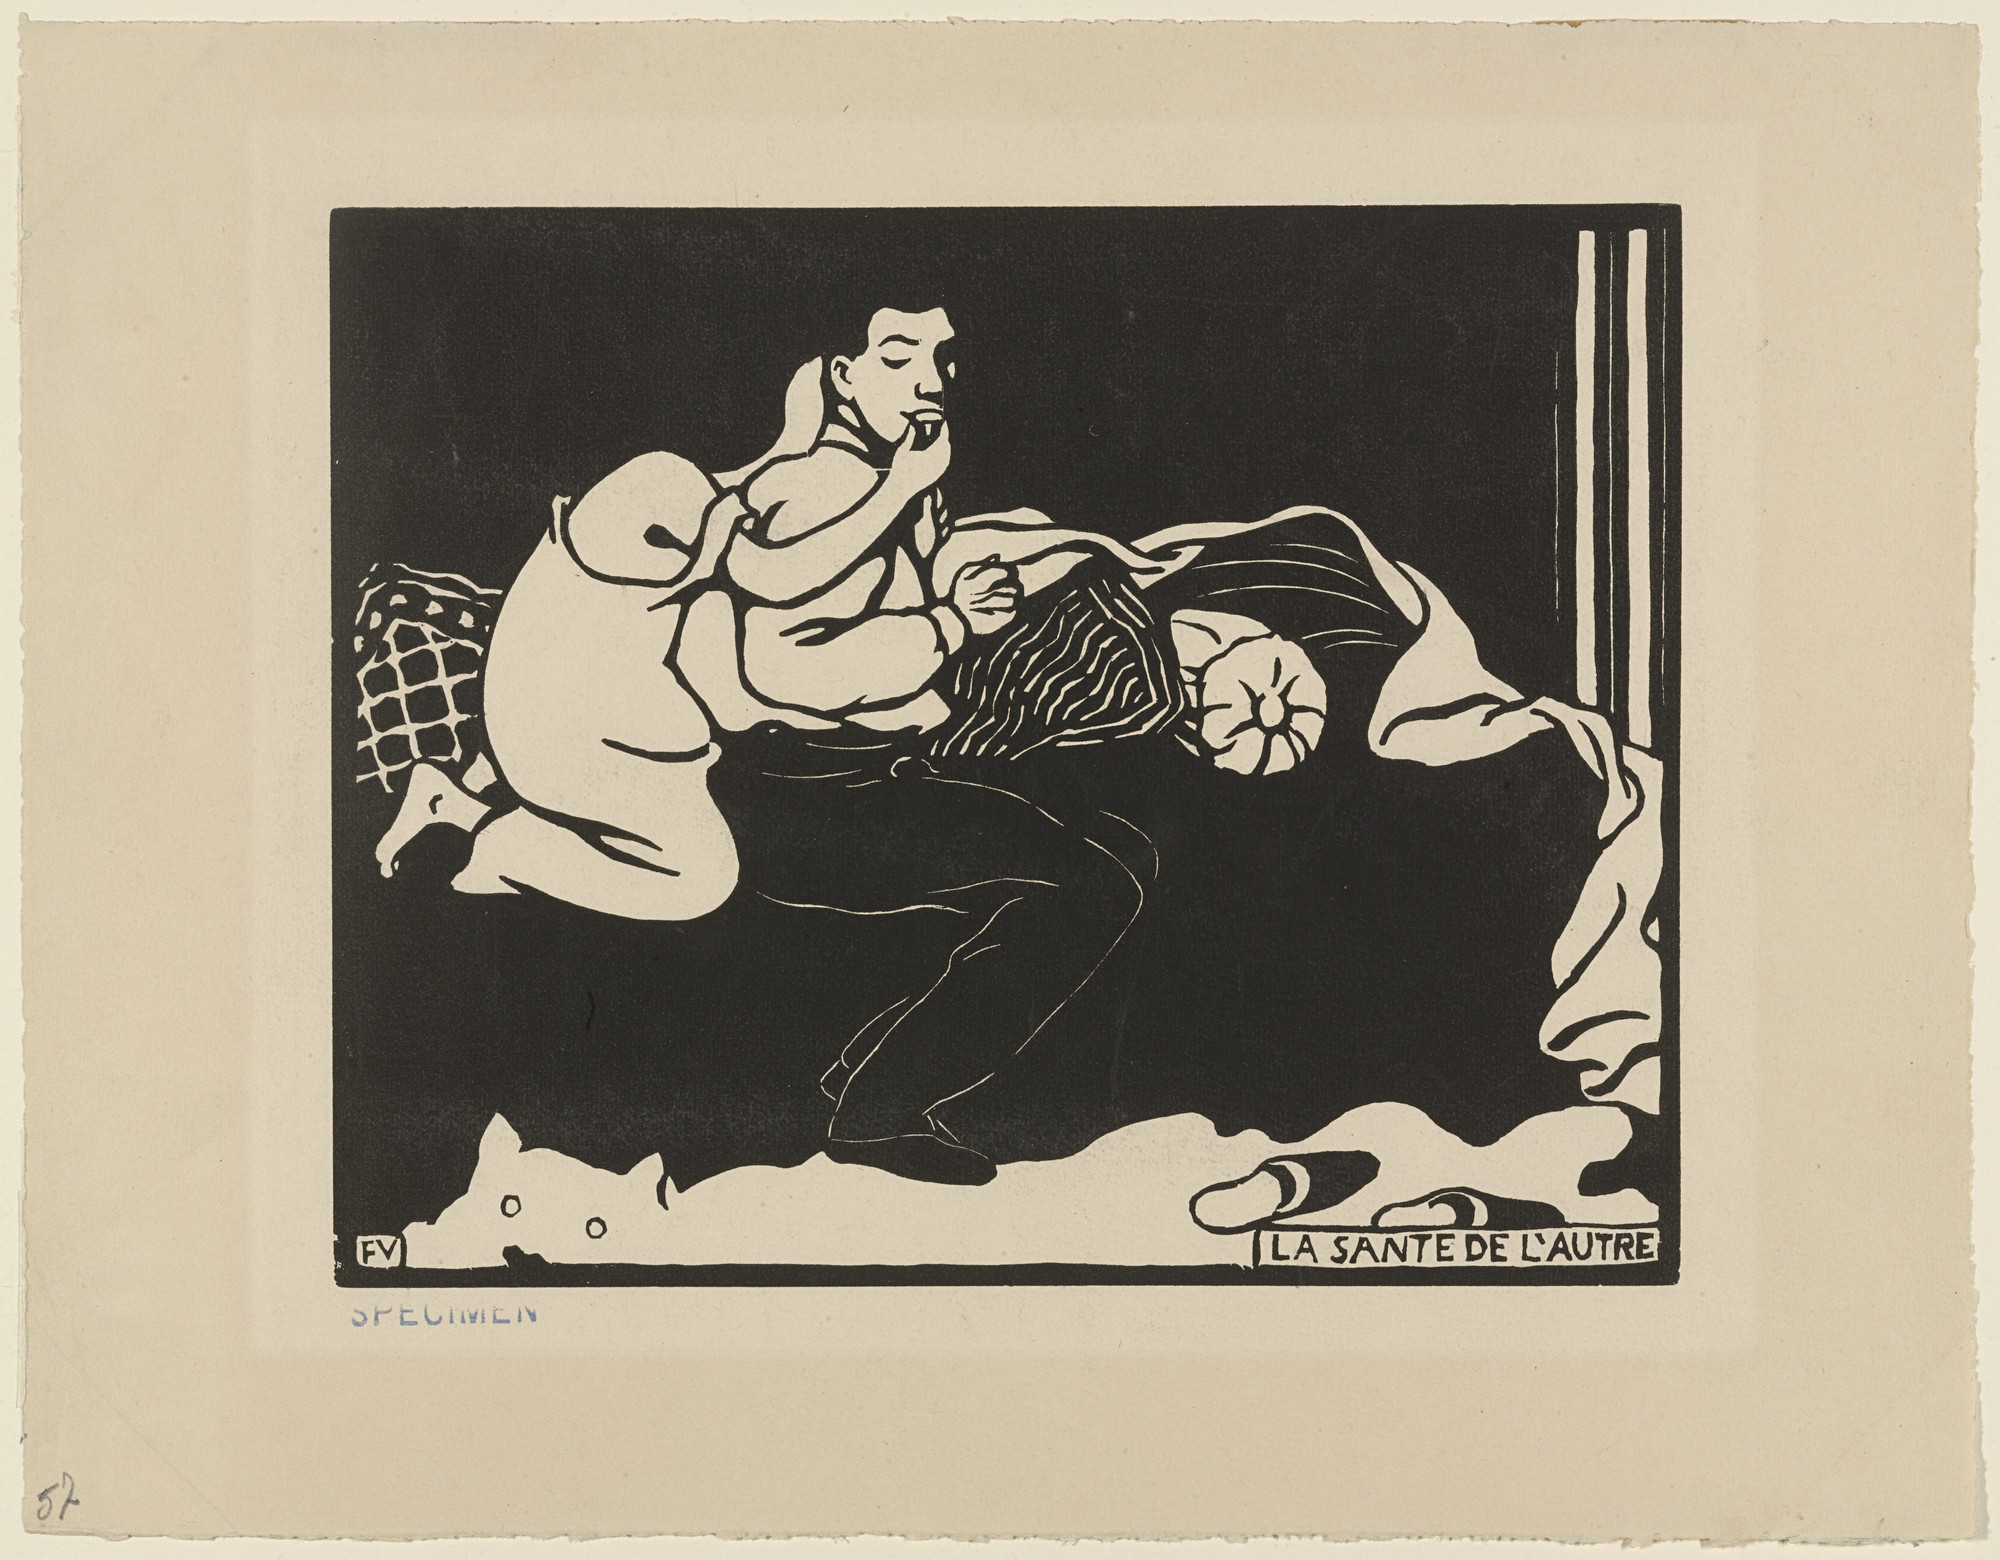 Félix Vallotton. The Other's Health (La Sante de l'autre) from Intimacies (Intimités). 1897